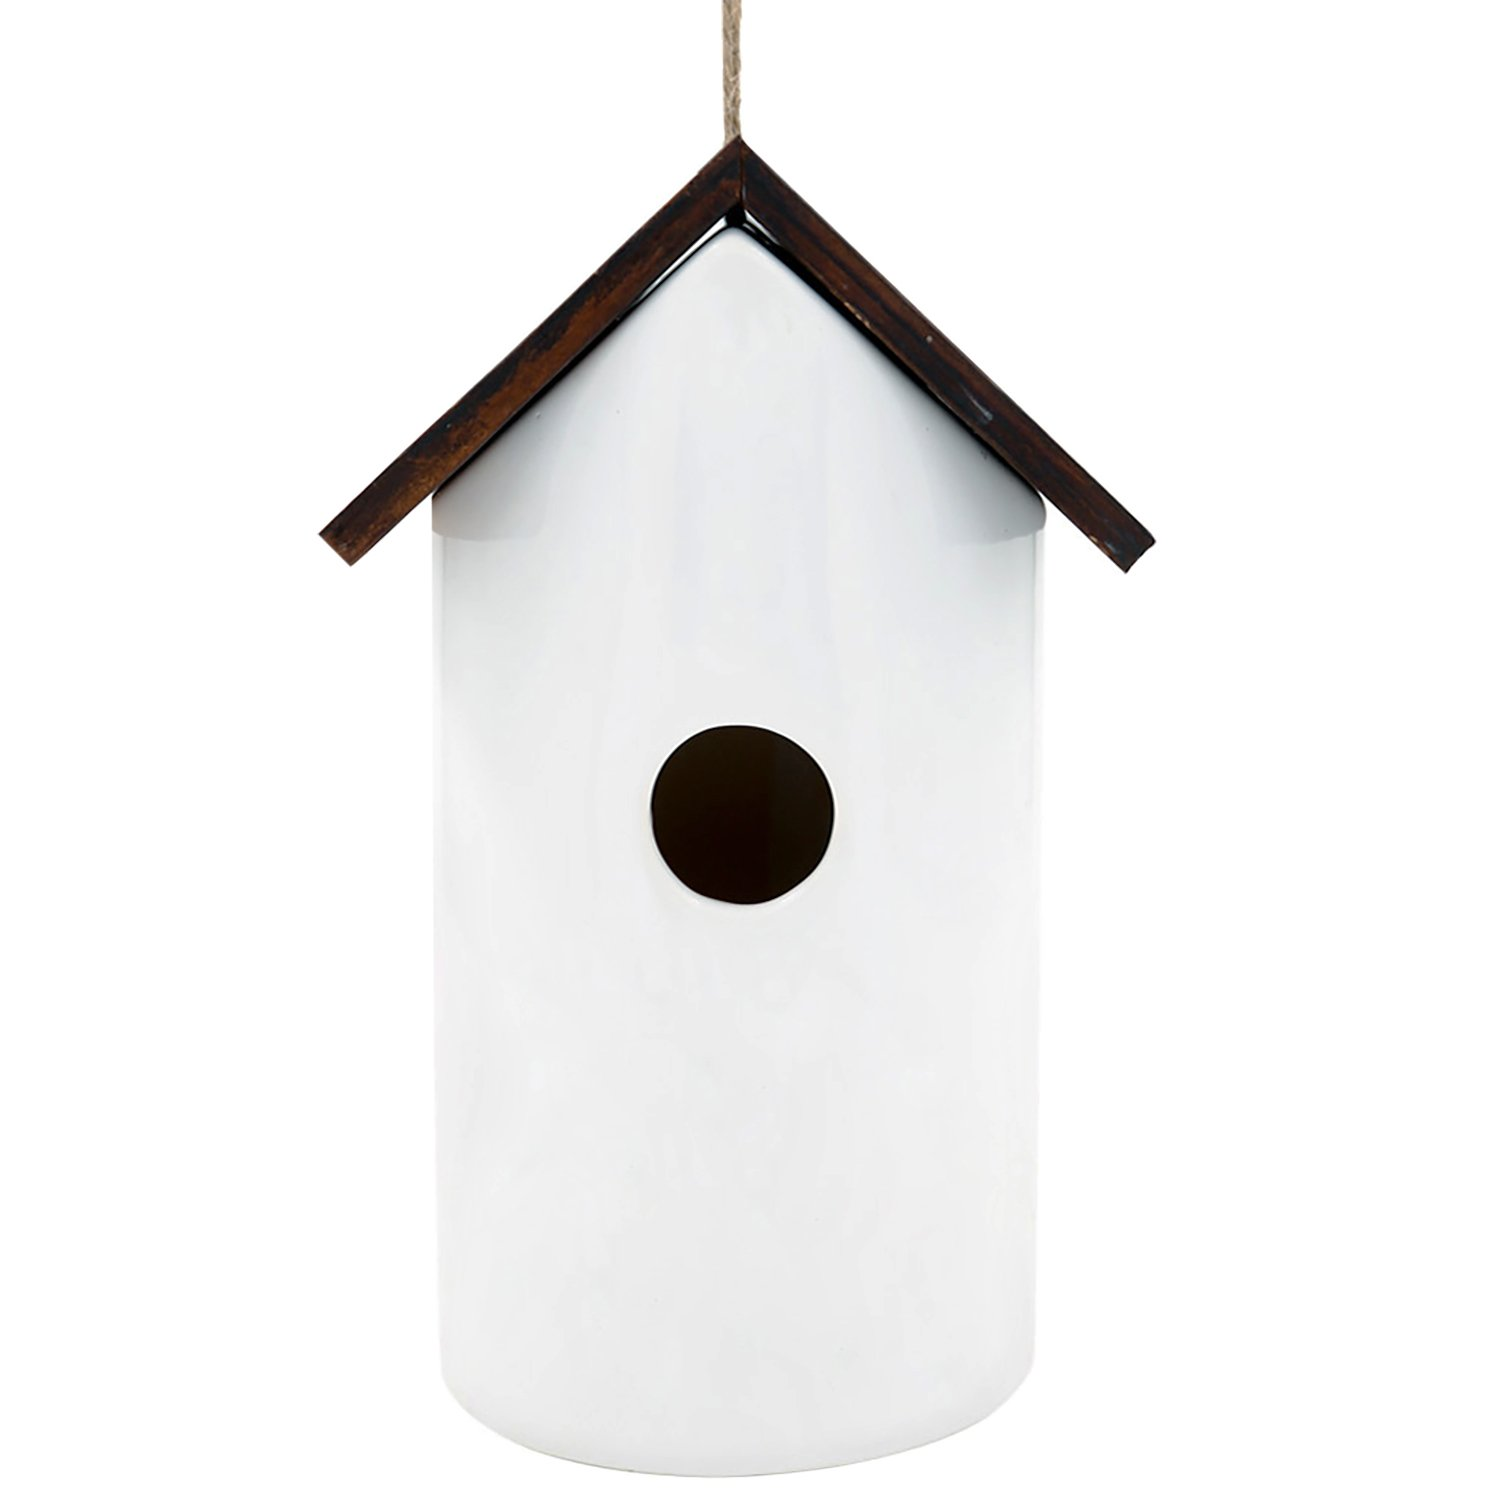 CEDAR HOME Hanging Bird House Outdoor Garden Patio Decorative Resin Pet Cottage White Ceramic Restful Birdhouse